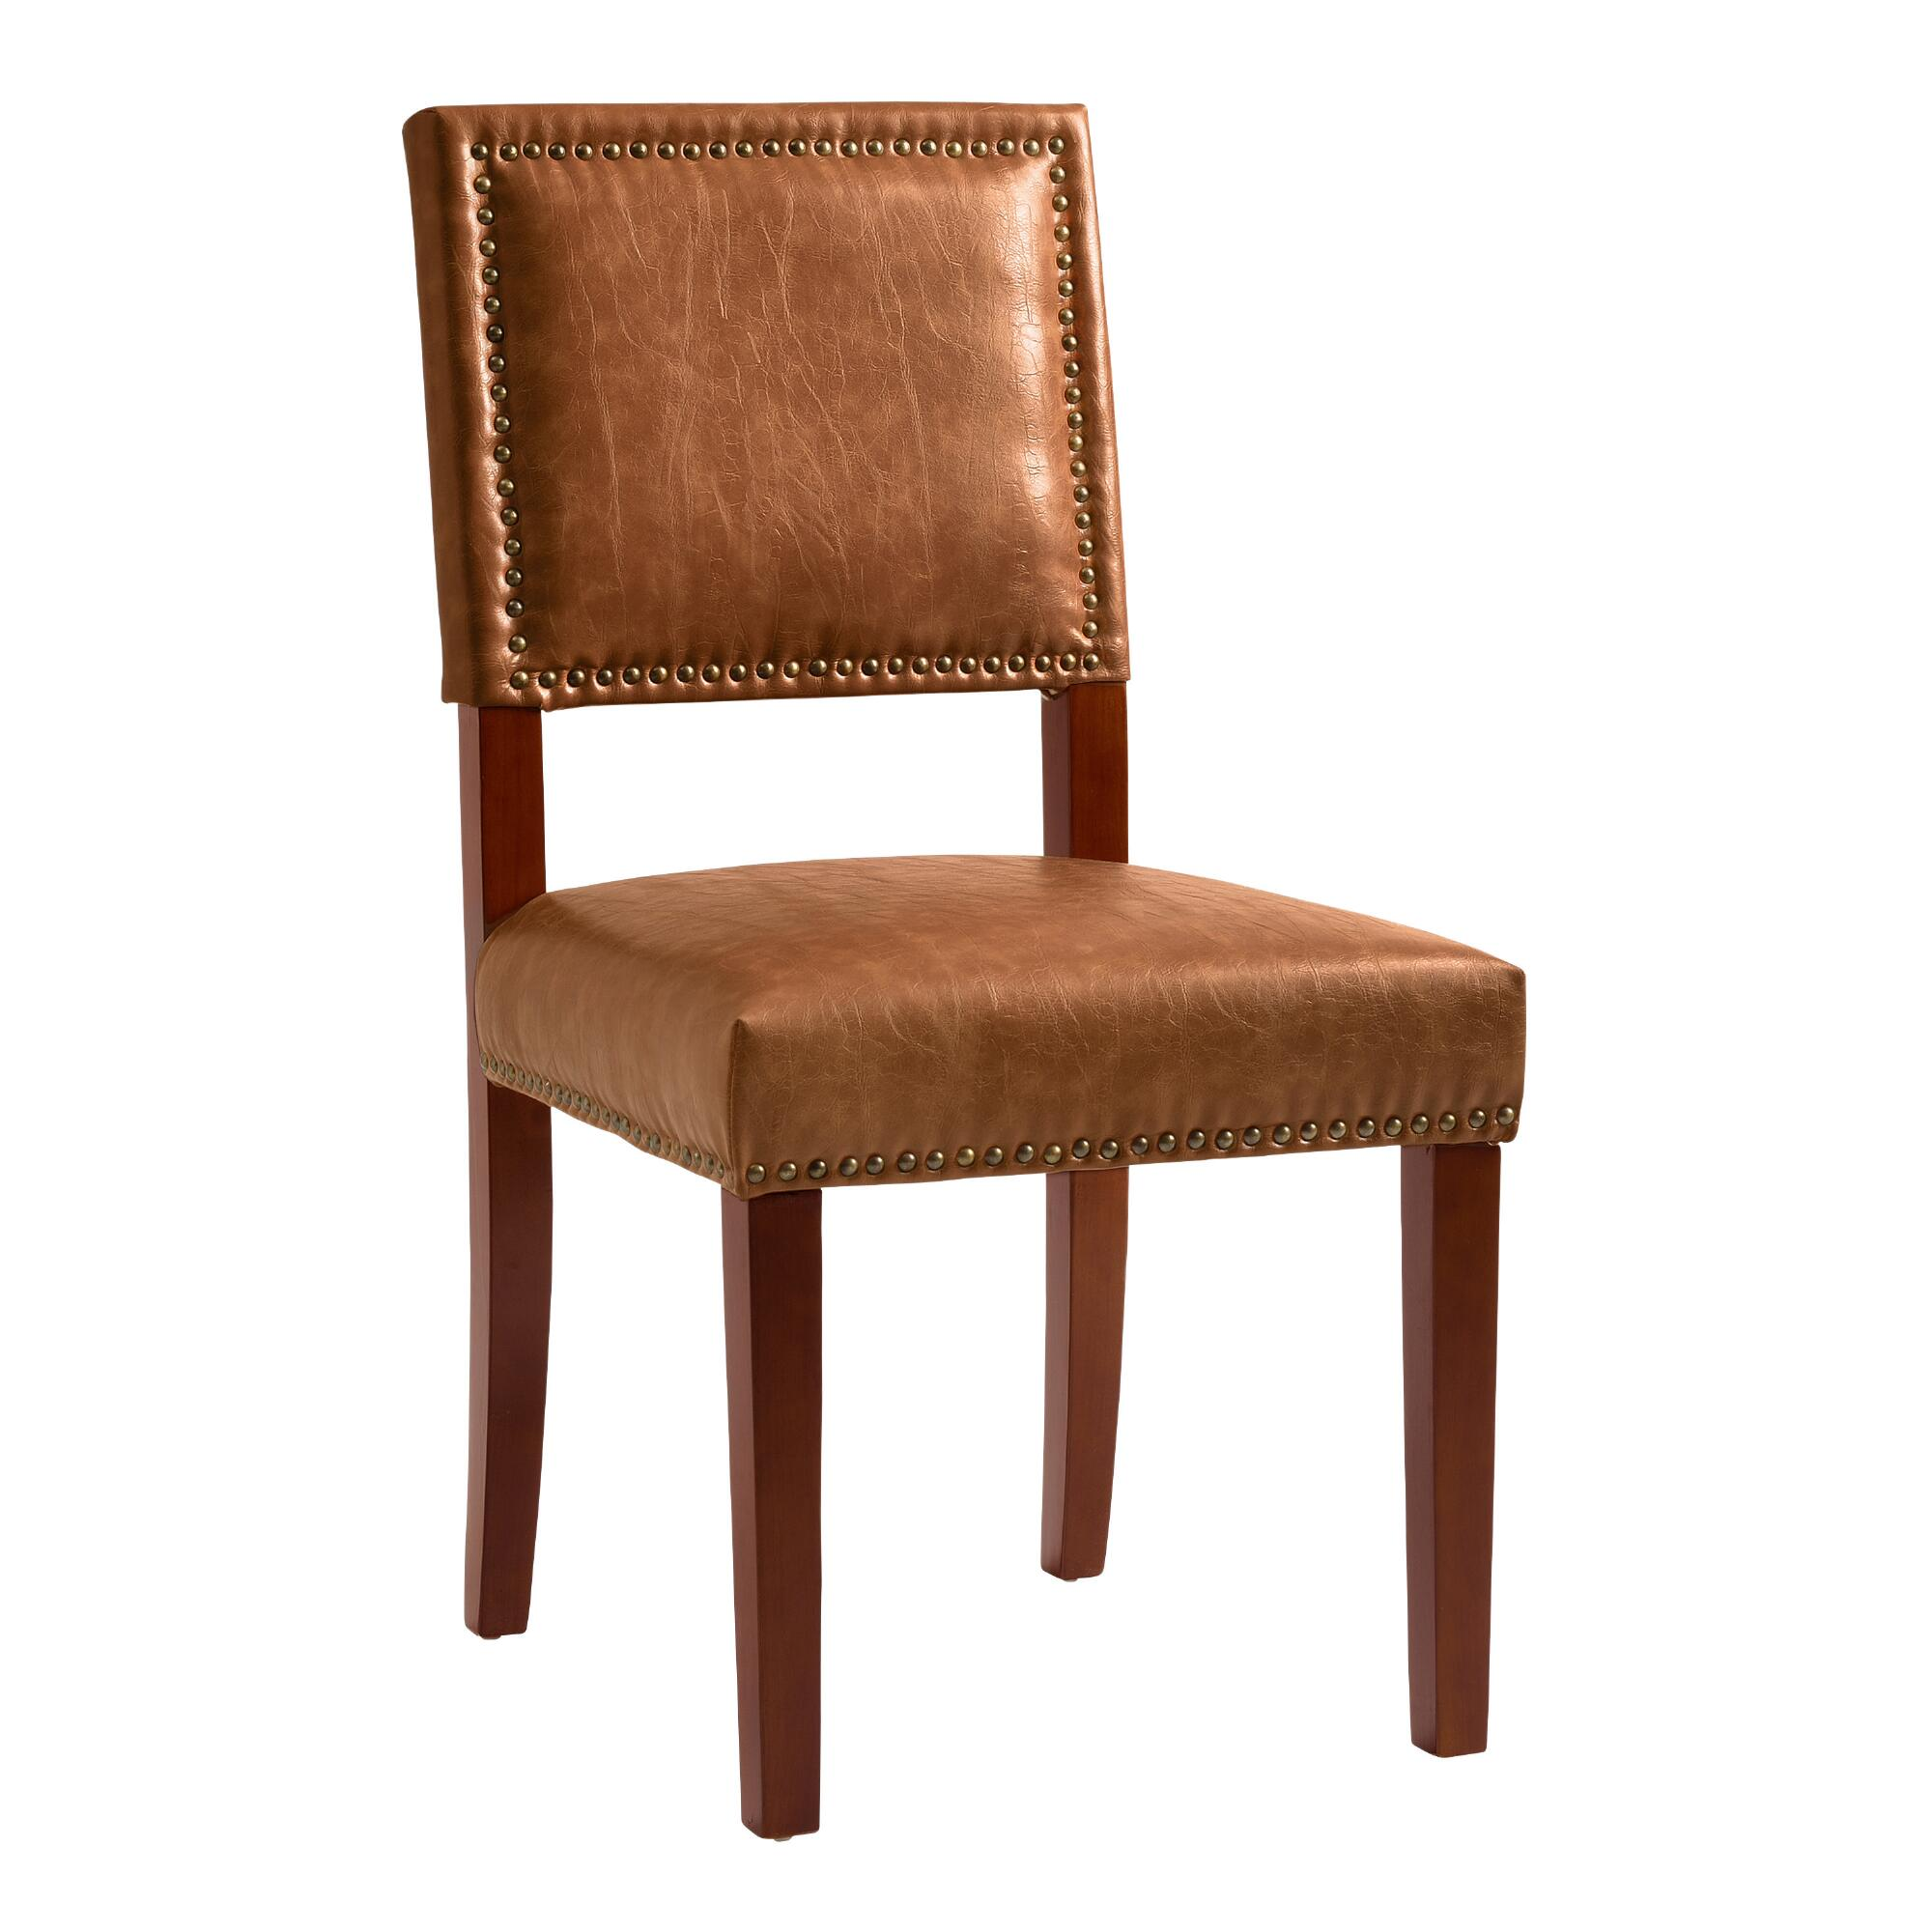 Caramel Jace Dining Chairs, Set Of 2